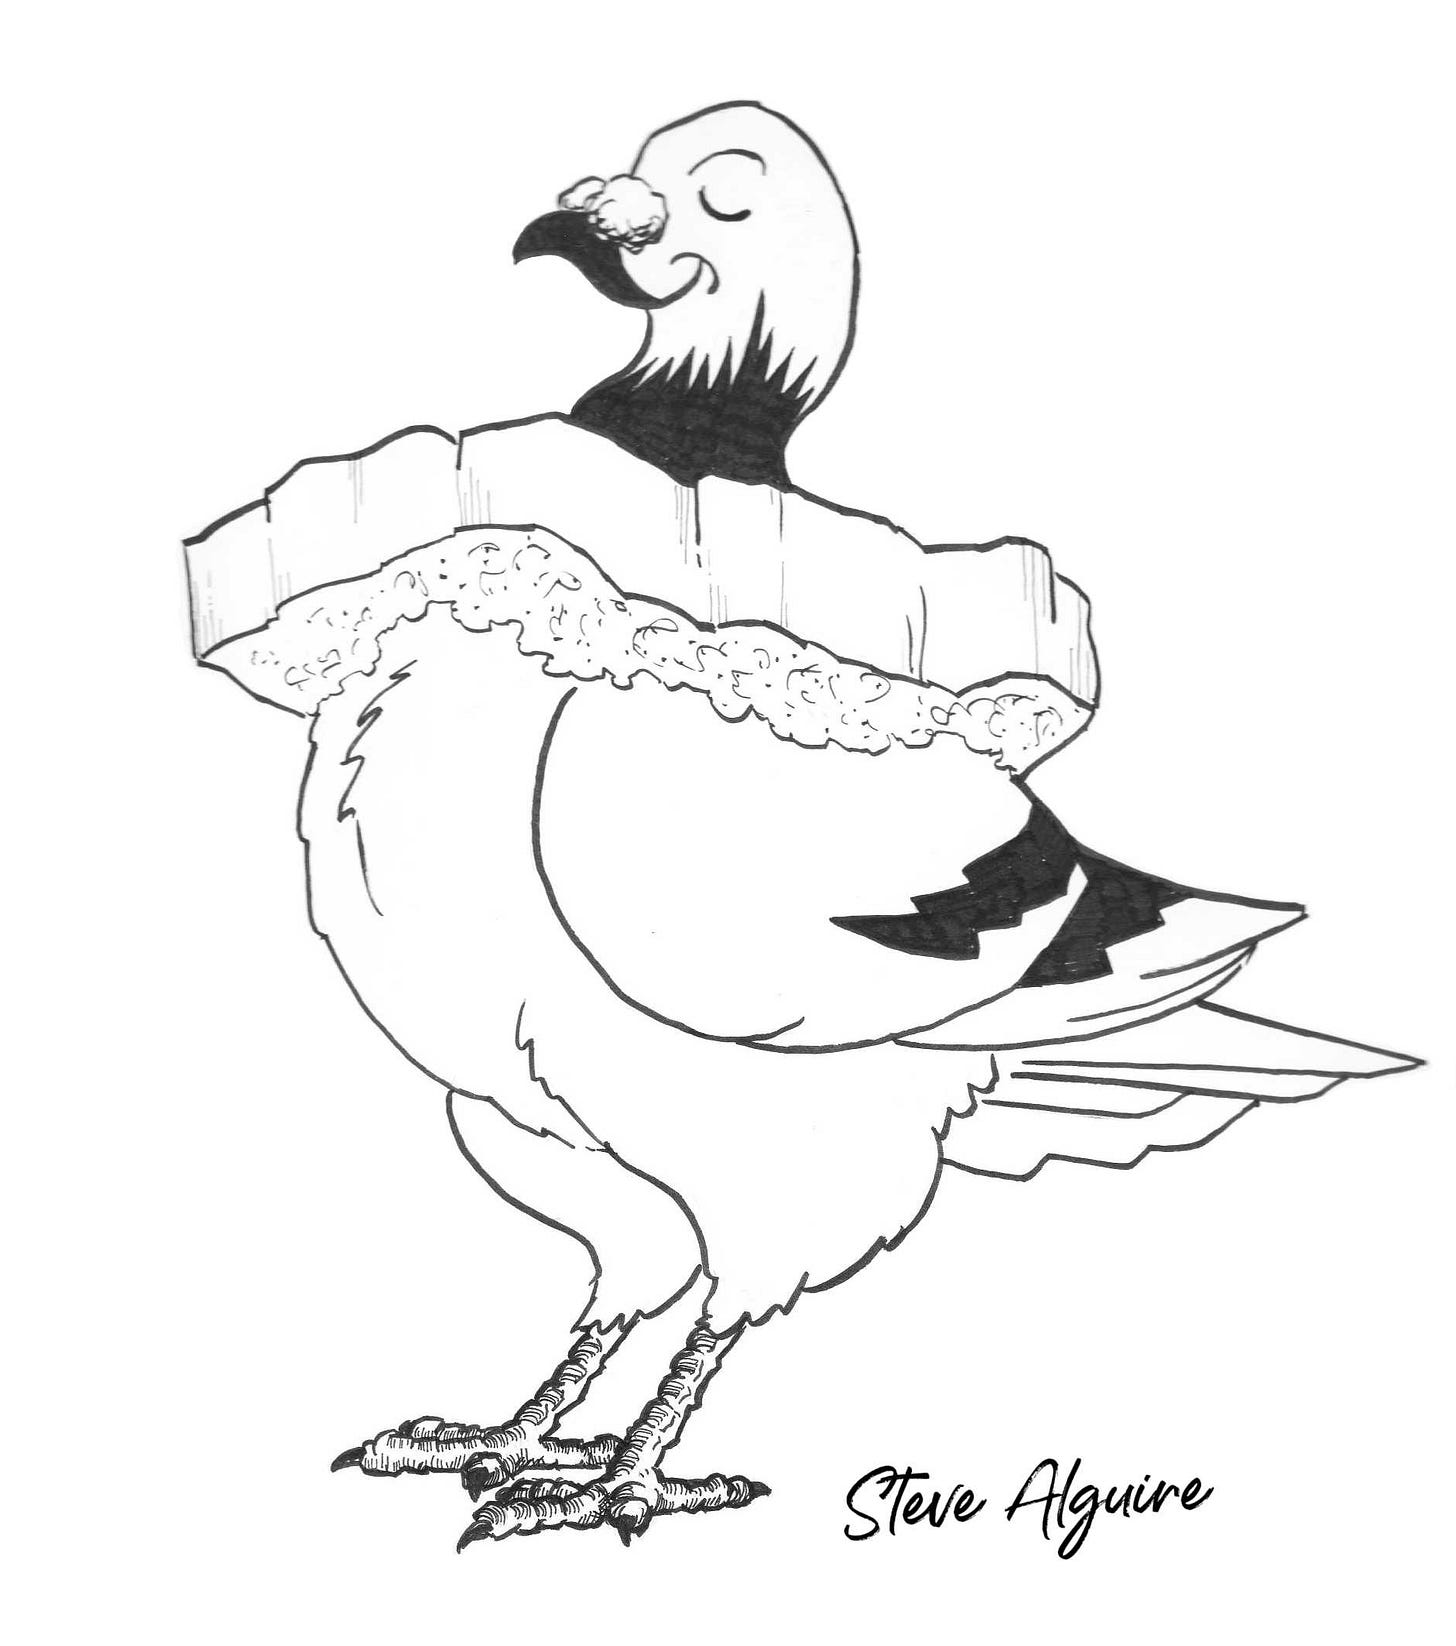 Ink drawing of a proud pigeon, head high and eyes closed, wearing a hollowed out crust of bread around their neck.